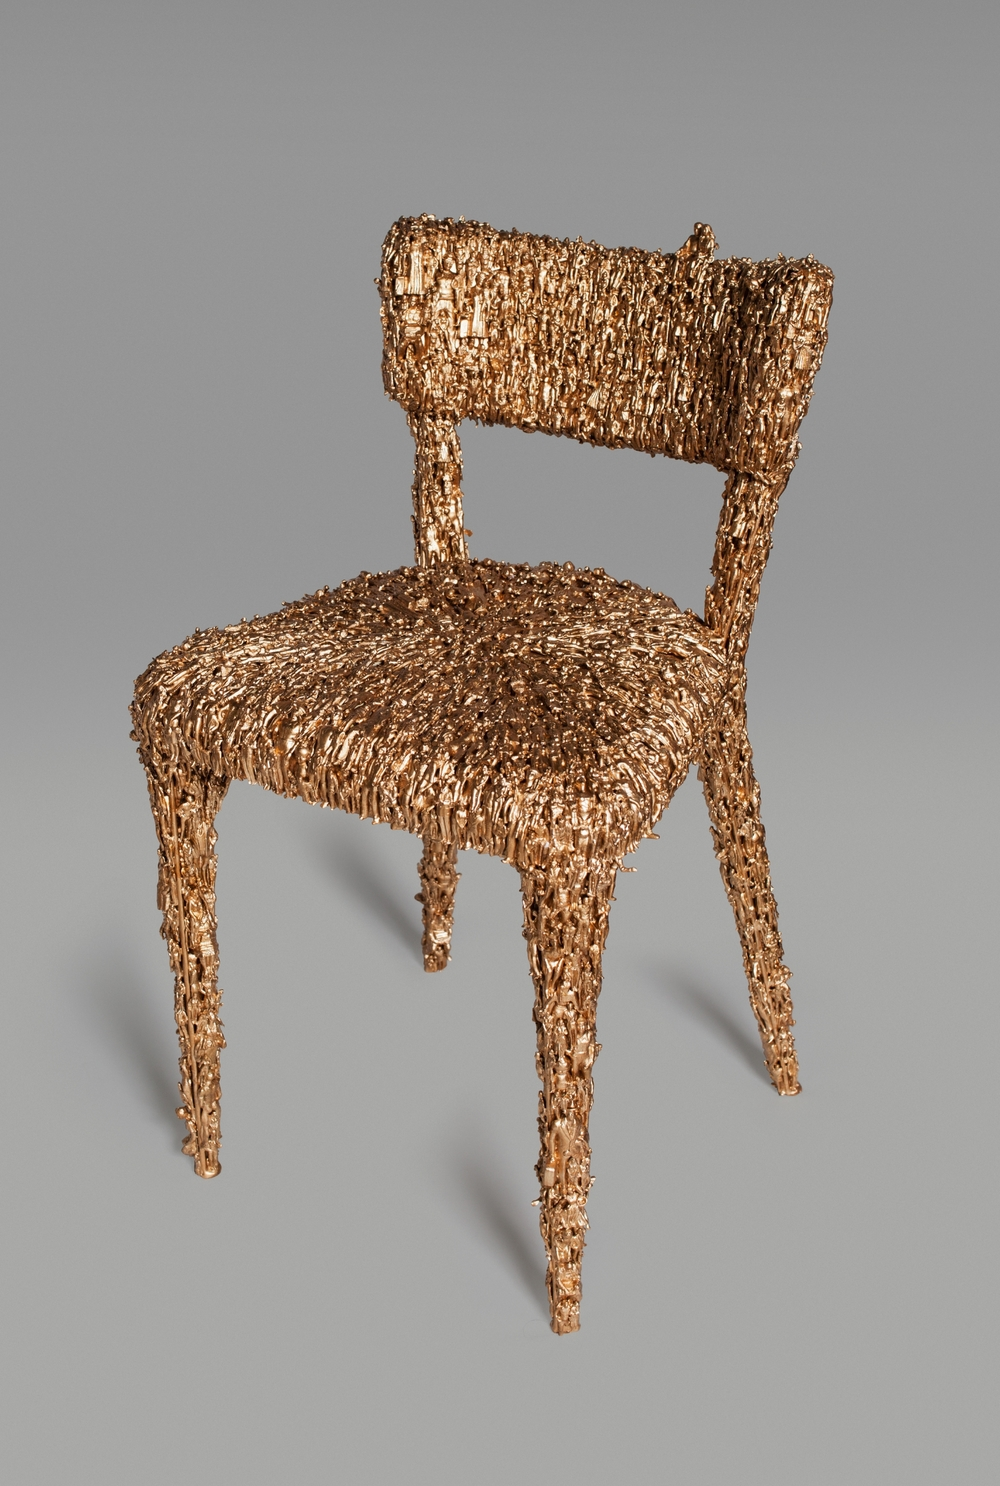 26_Nancy_Fouts_Chair_Carl_Glover.jpg